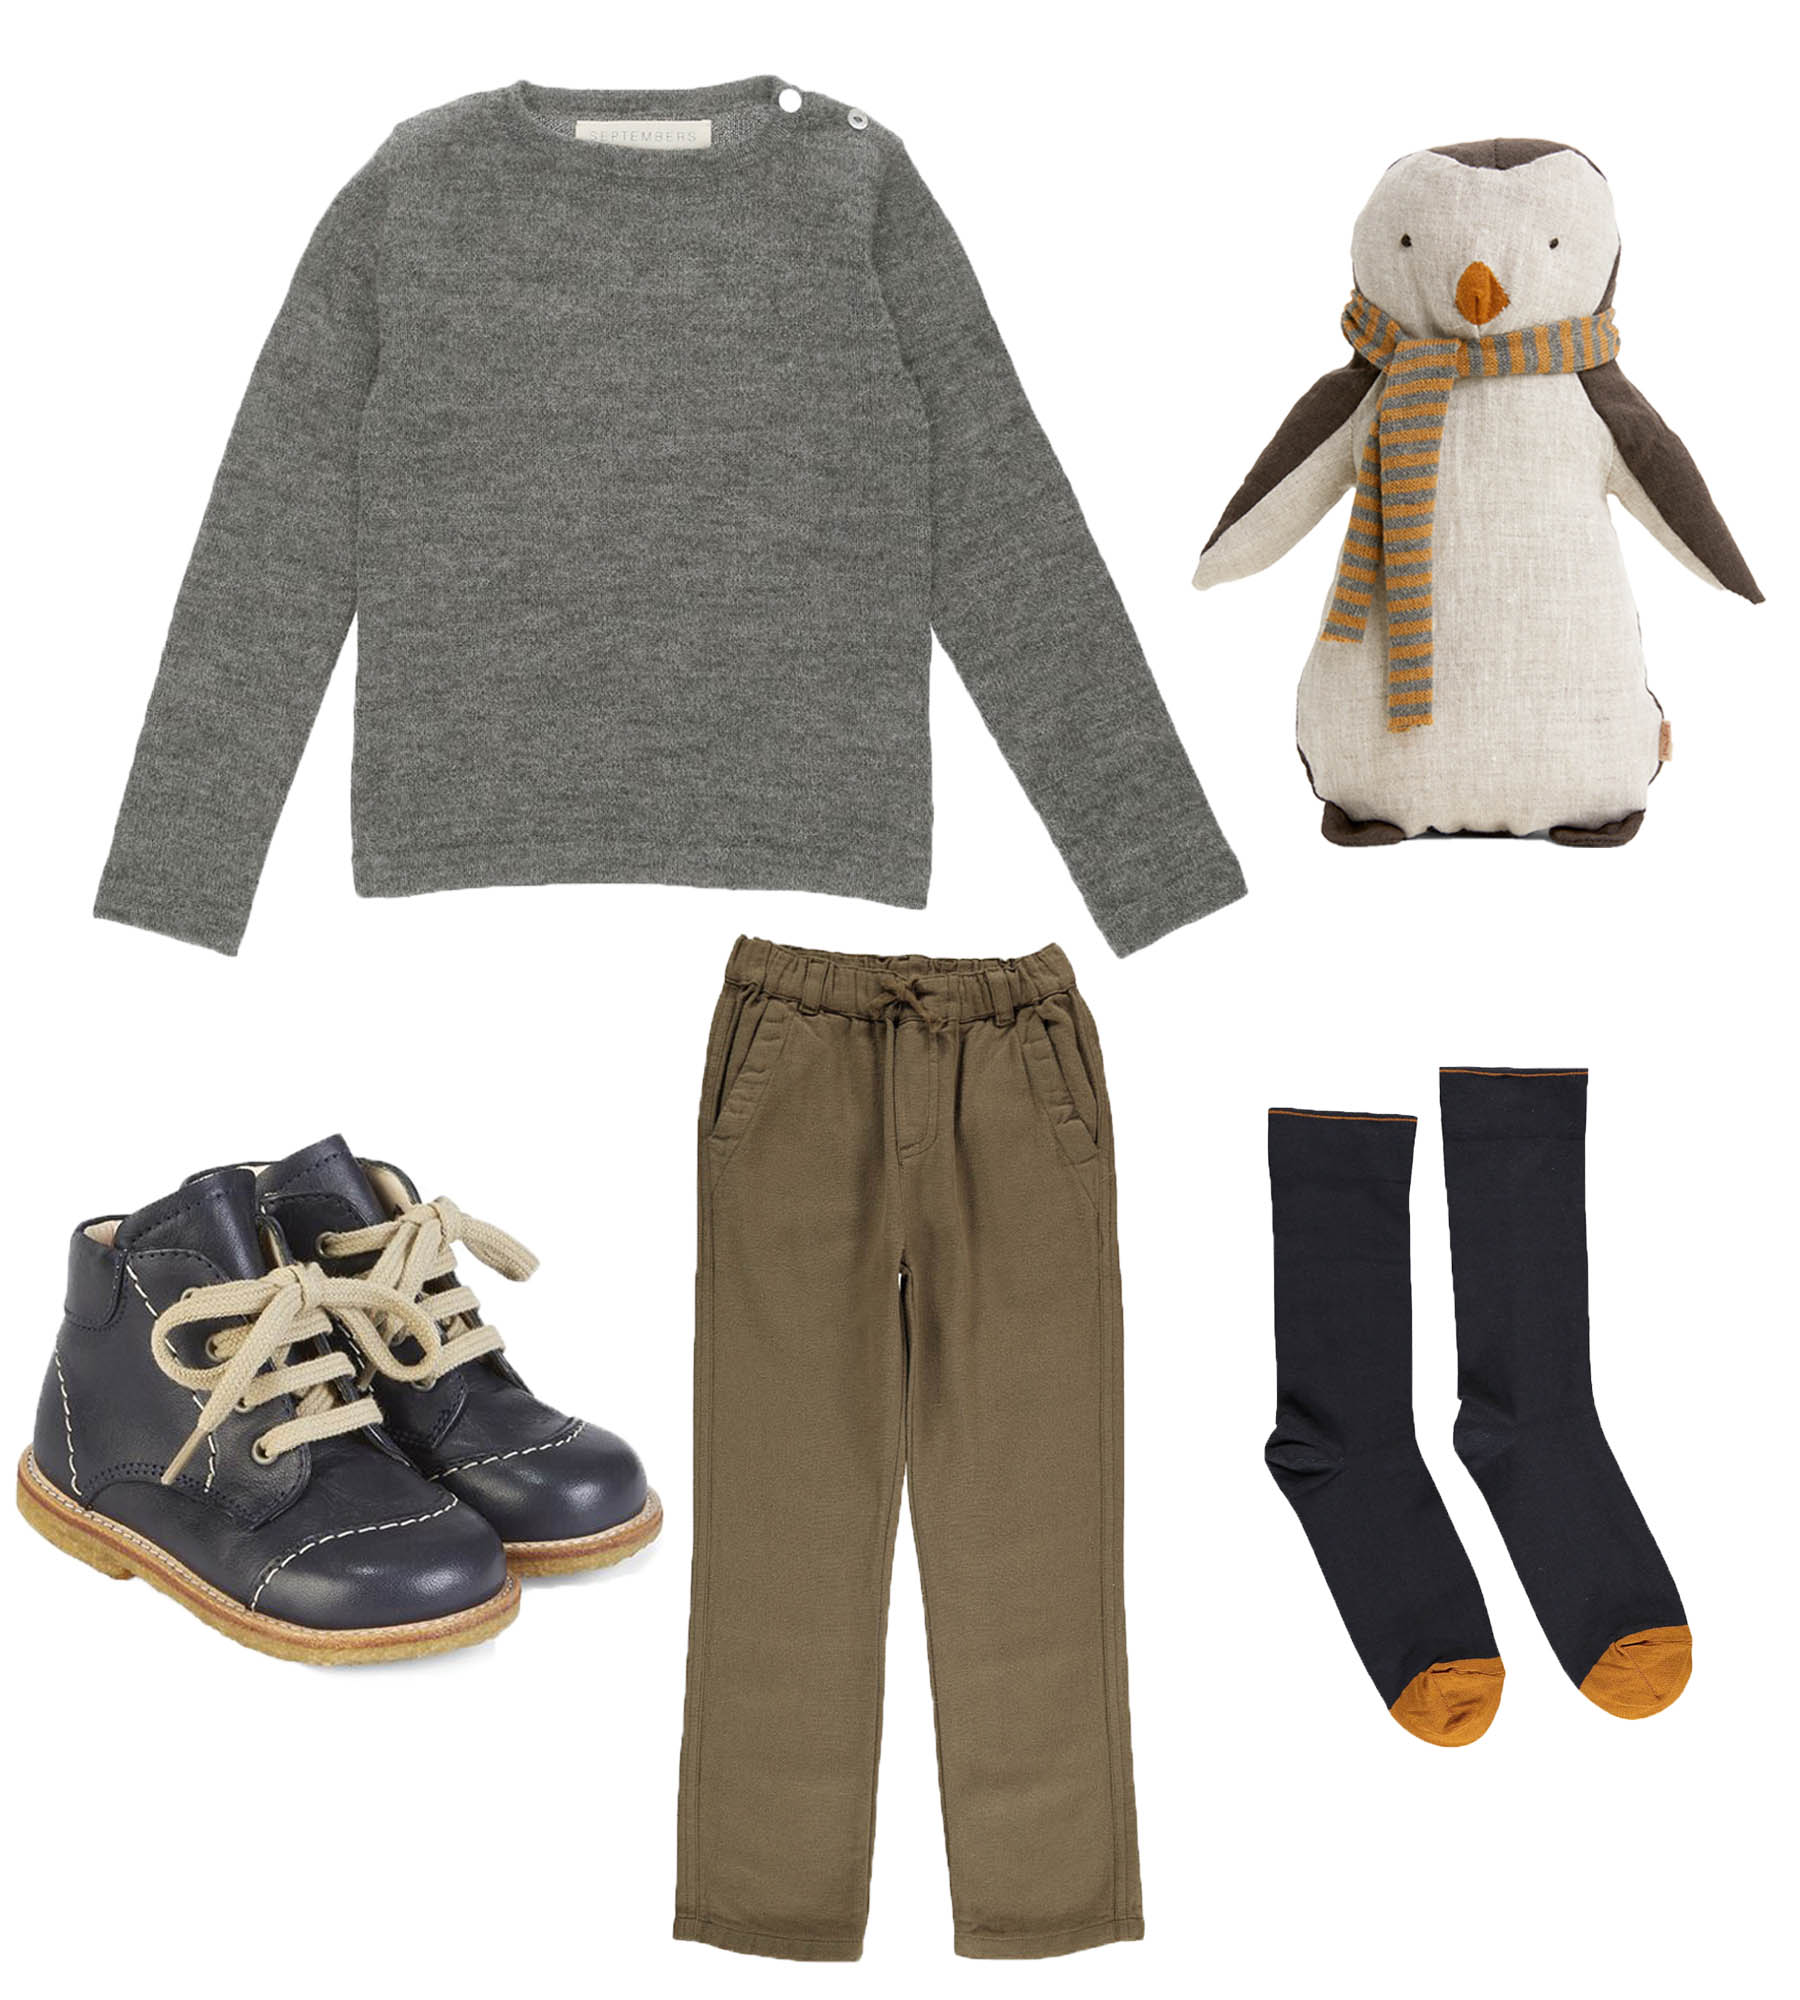 Knit/ SEPTEMBERS  Penguin Boy/ MAILEG  Shoes/ ANGULUS  Pants/ BONTON  Socks/ BONNE MAISON